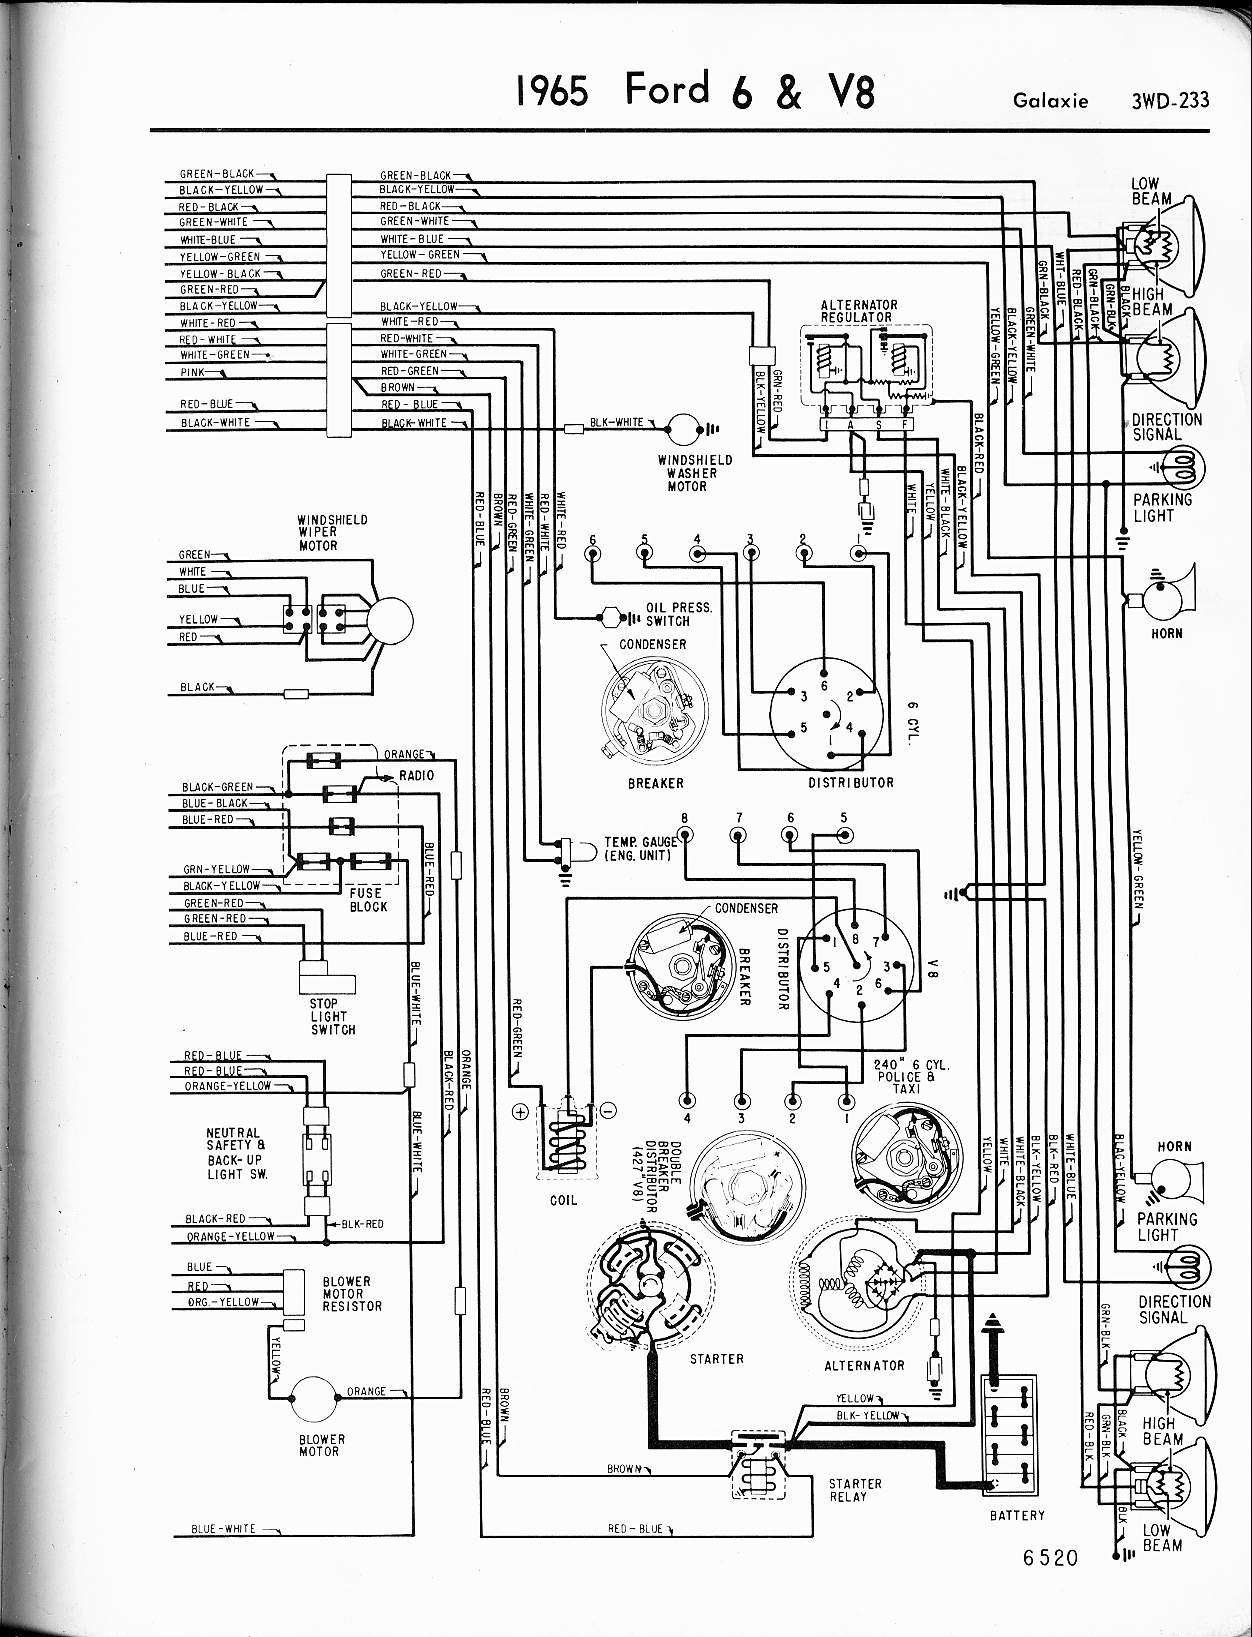 Wiring Diagrams For 66 Bronco Distributor - Wiring Block Diagram on 1981 ford bronco wiring diagram, 1977 ford bronco wiring diagram, 1992 ford bronco wiring diagram, 1987 ford bronco wiring diagram, 1977 ford f-100 wiring diagram, 1968 ford falcon wiring diagram, 78 ford bronco wiring diagram, 72 ford steering column wiring diagram, 1974 ford bronco wiring diagram, 1973 ford bronco wiring diagram, 1966 ford bronco wiring diagram, 1965 ford galaxie 500 wiring diagram, 1969 ford galaxie 500 wiring diagram, 1976 ford bronco seats, 1968 ford bronco wiring diagram, 1985 ford bronco wiring diagram, 1990 ford bronco wiring diagram, ford bronco aftermarket wiring diagram, 1976 ford bronco fuel tank, 1984 ford bronco wiring diagram,